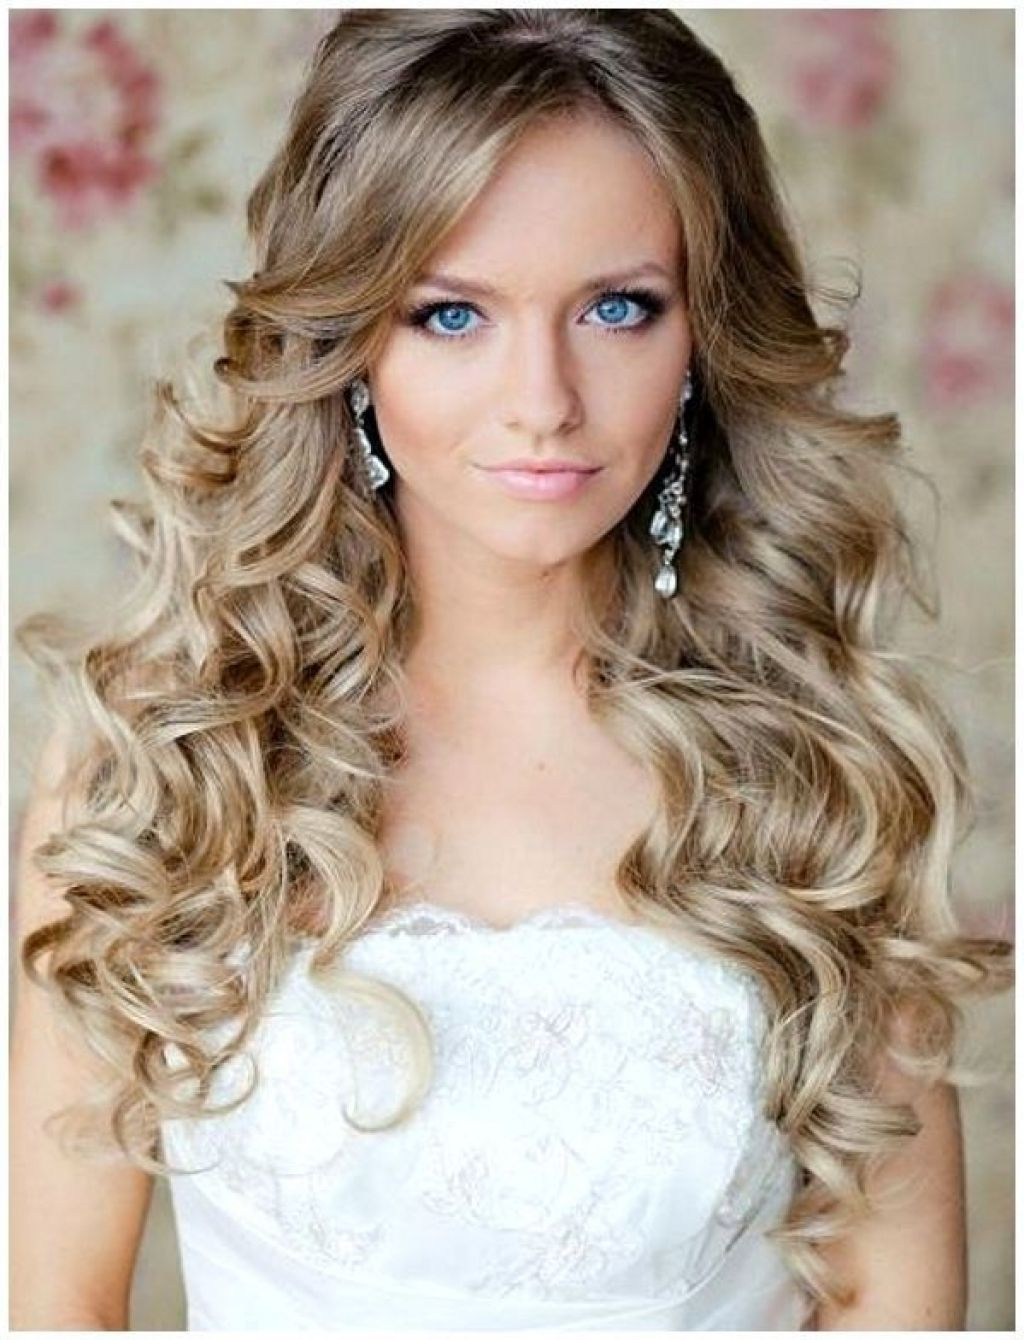 Hairstyles For Wedding Guest the 25 best wedding guest hairstyles ideas on pinterest wedding guest updo wedding guest hair and wedding guest hair updos Wedding Guest Hairstyles With Bangs Simple Wedding Hairstyles Simple Hairstyles For Wedding Guests